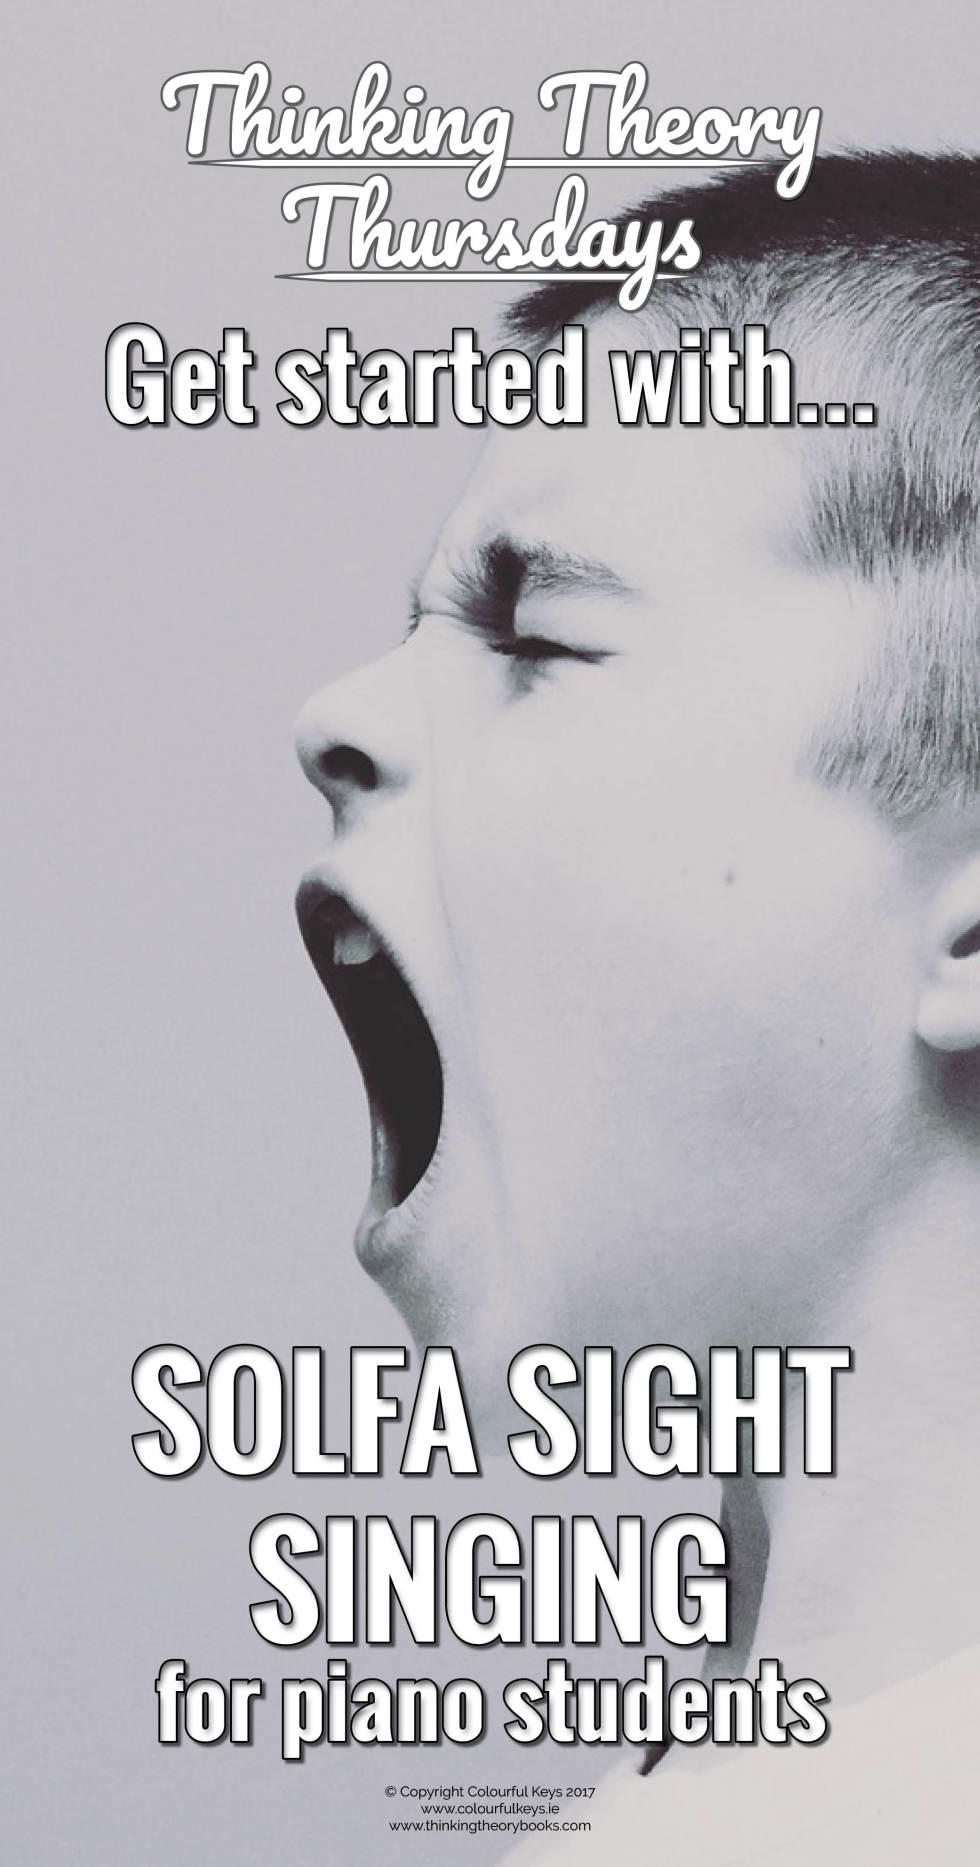 Teaching piano students to sing at sight with solfa